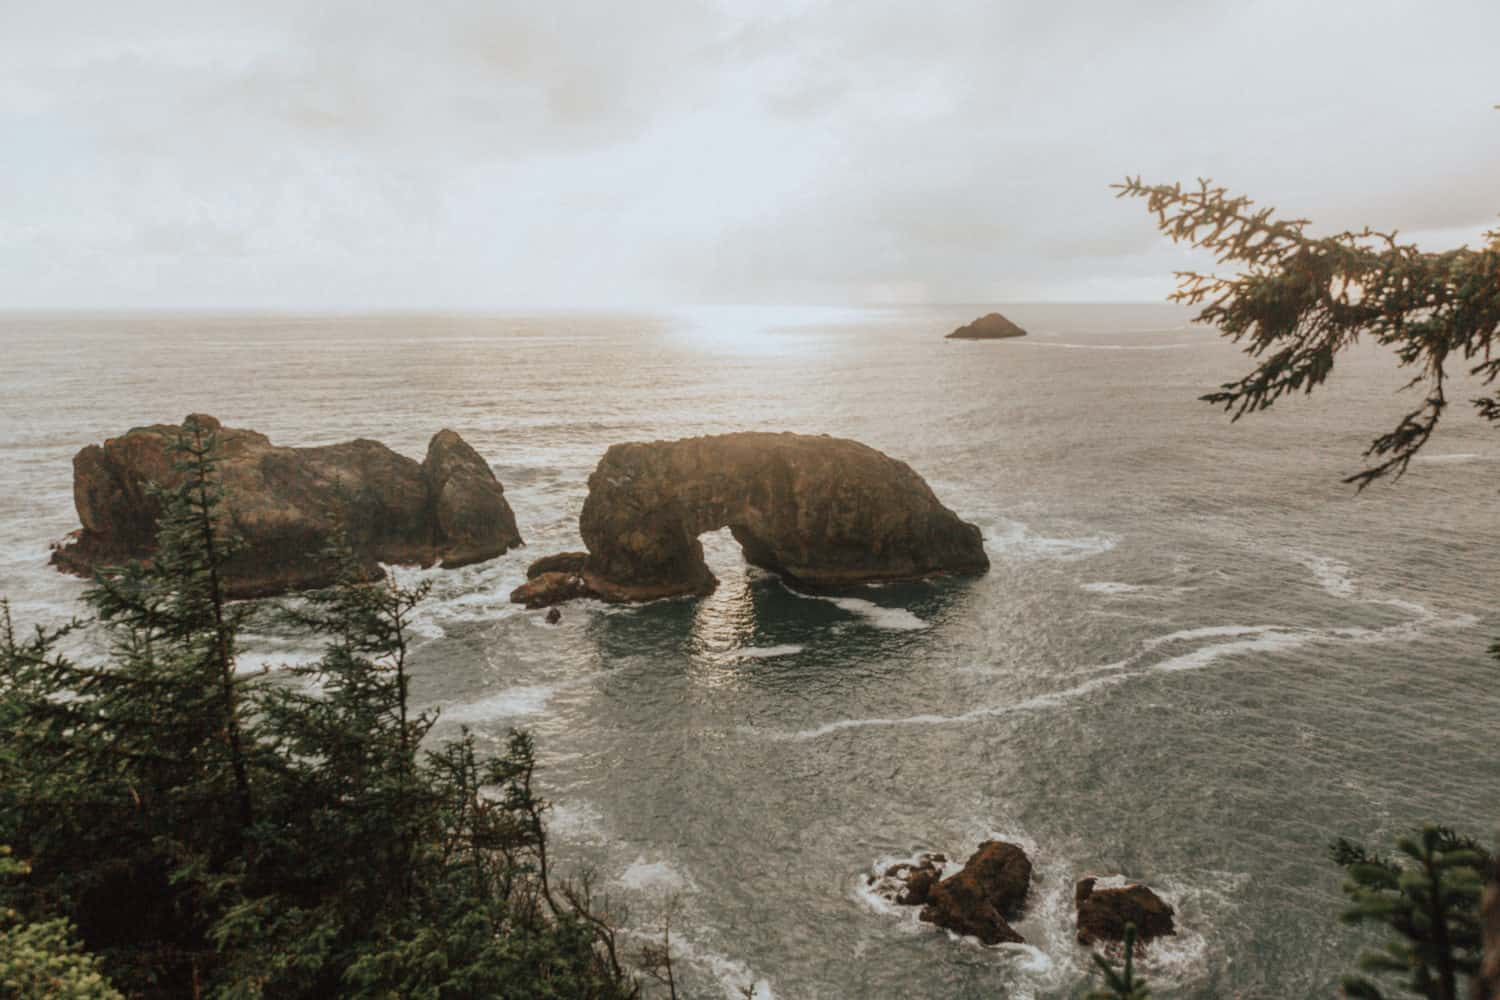 Arch Rock at Samuel H. Boardman Scenic Corridor